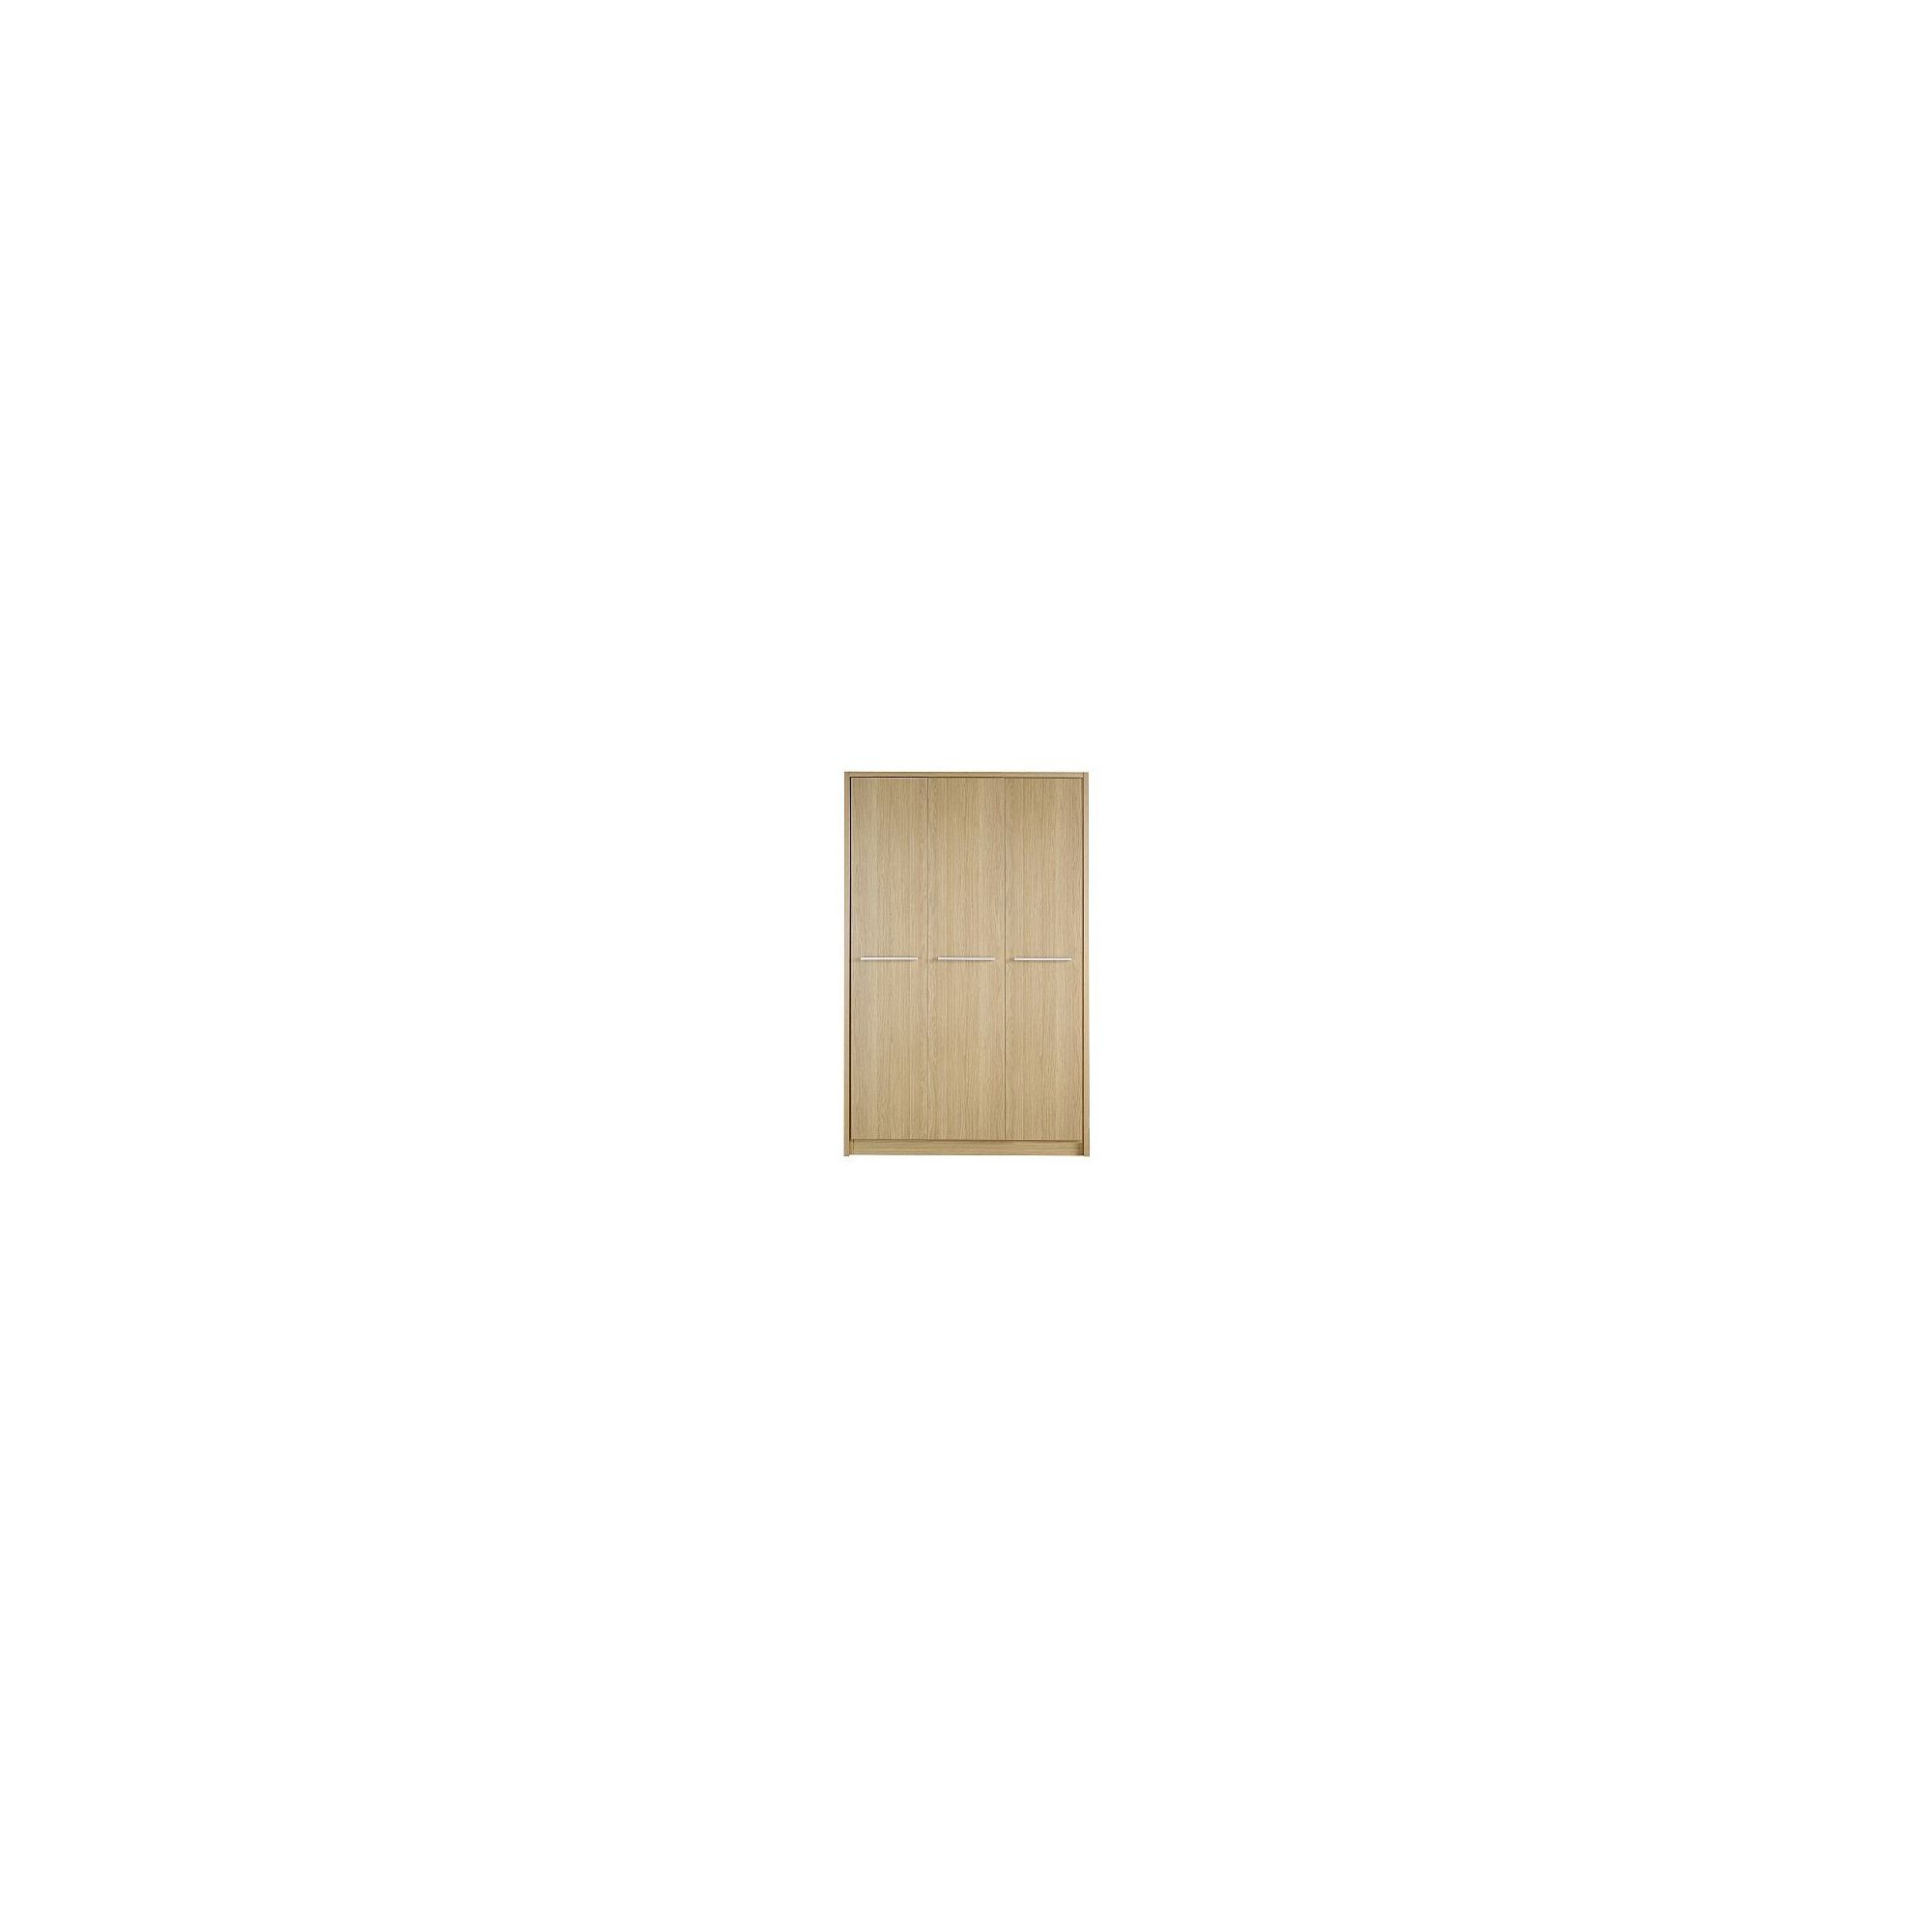 Kit Form Kit-form Delux Three Door Plain Wardrobe in Oak at Tesco Direct